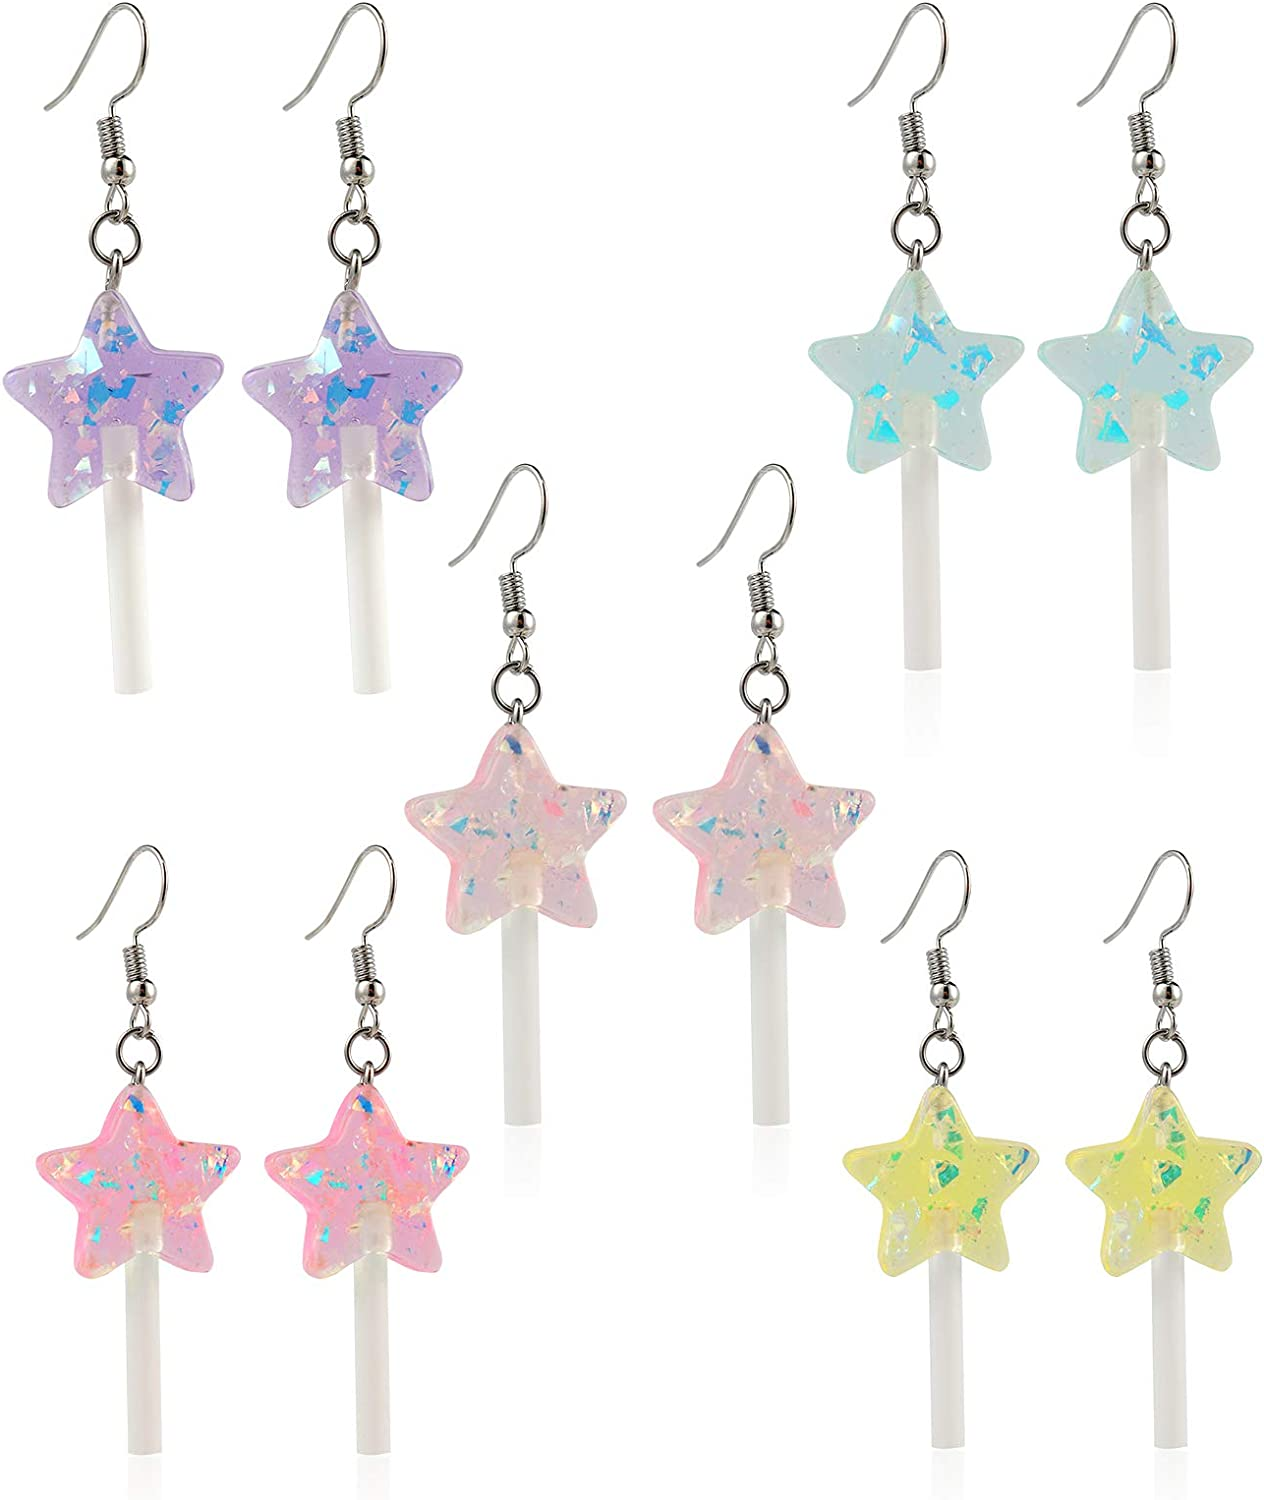 5 Pairs Cute Resin Star-shaped Lollipop Drop Earring Handmade Candy Color Simulation Food Dangle Earring Funny Cute Cartoon Friendship Exaggerated Trend Style Jewelry for Women Girl